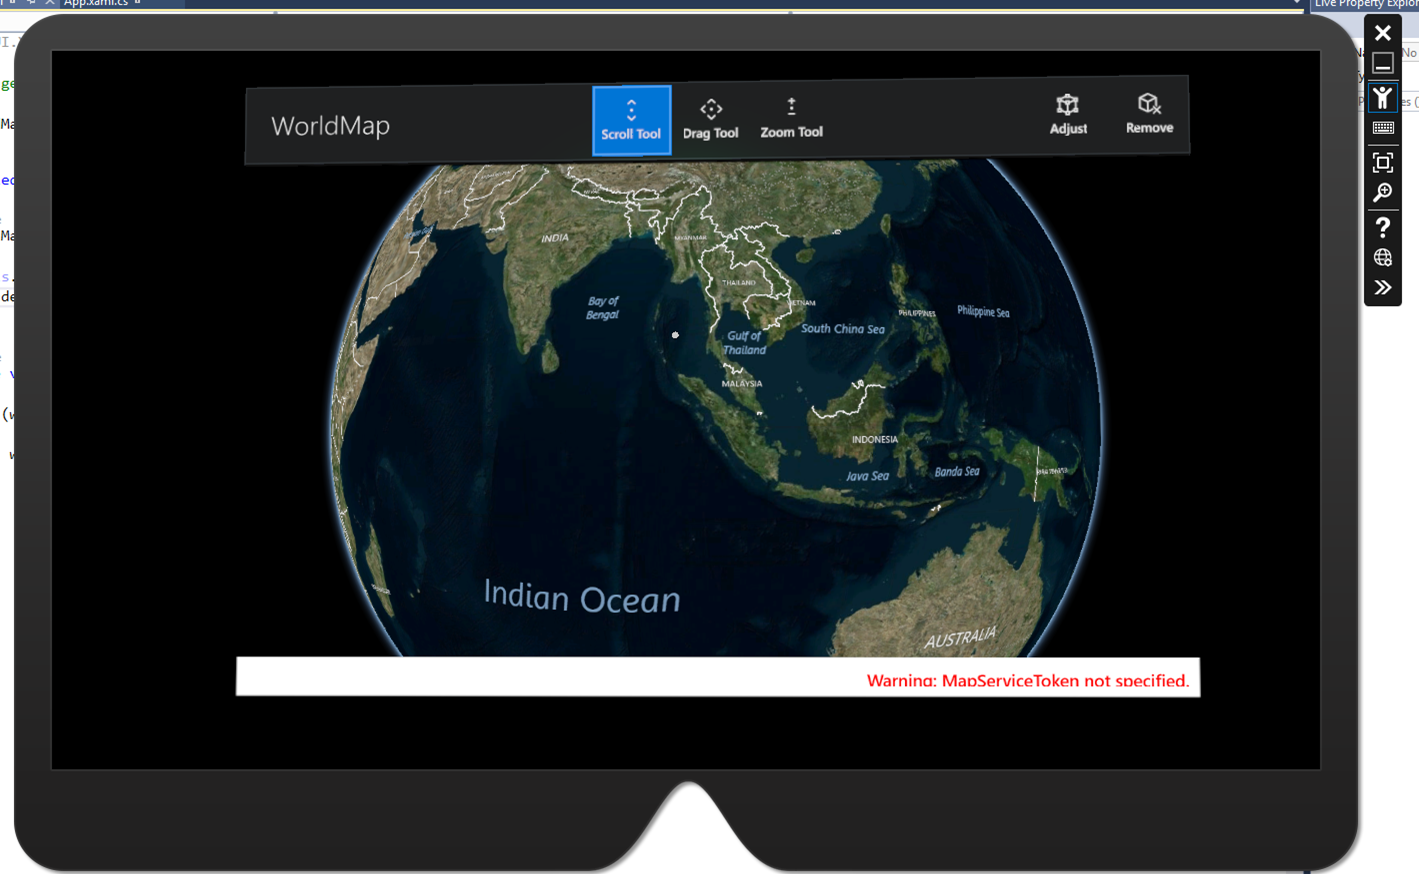 UWP World Map running in HoloLens